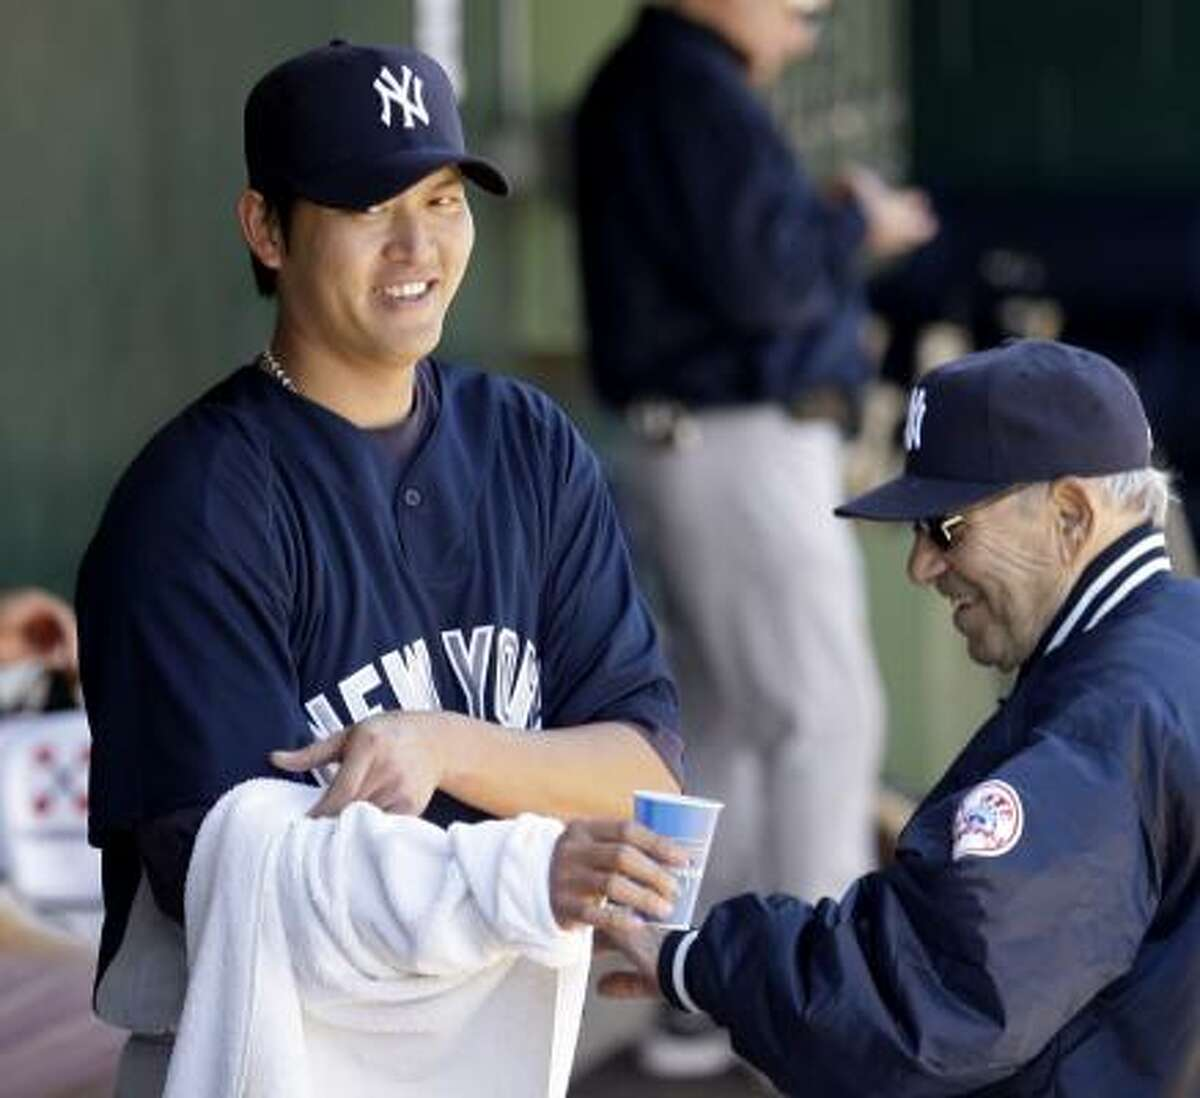 Hall of Famer Yogi Berra, who was taking in the game with the Yankees, meets with pitcher Chien-Ming Wang.